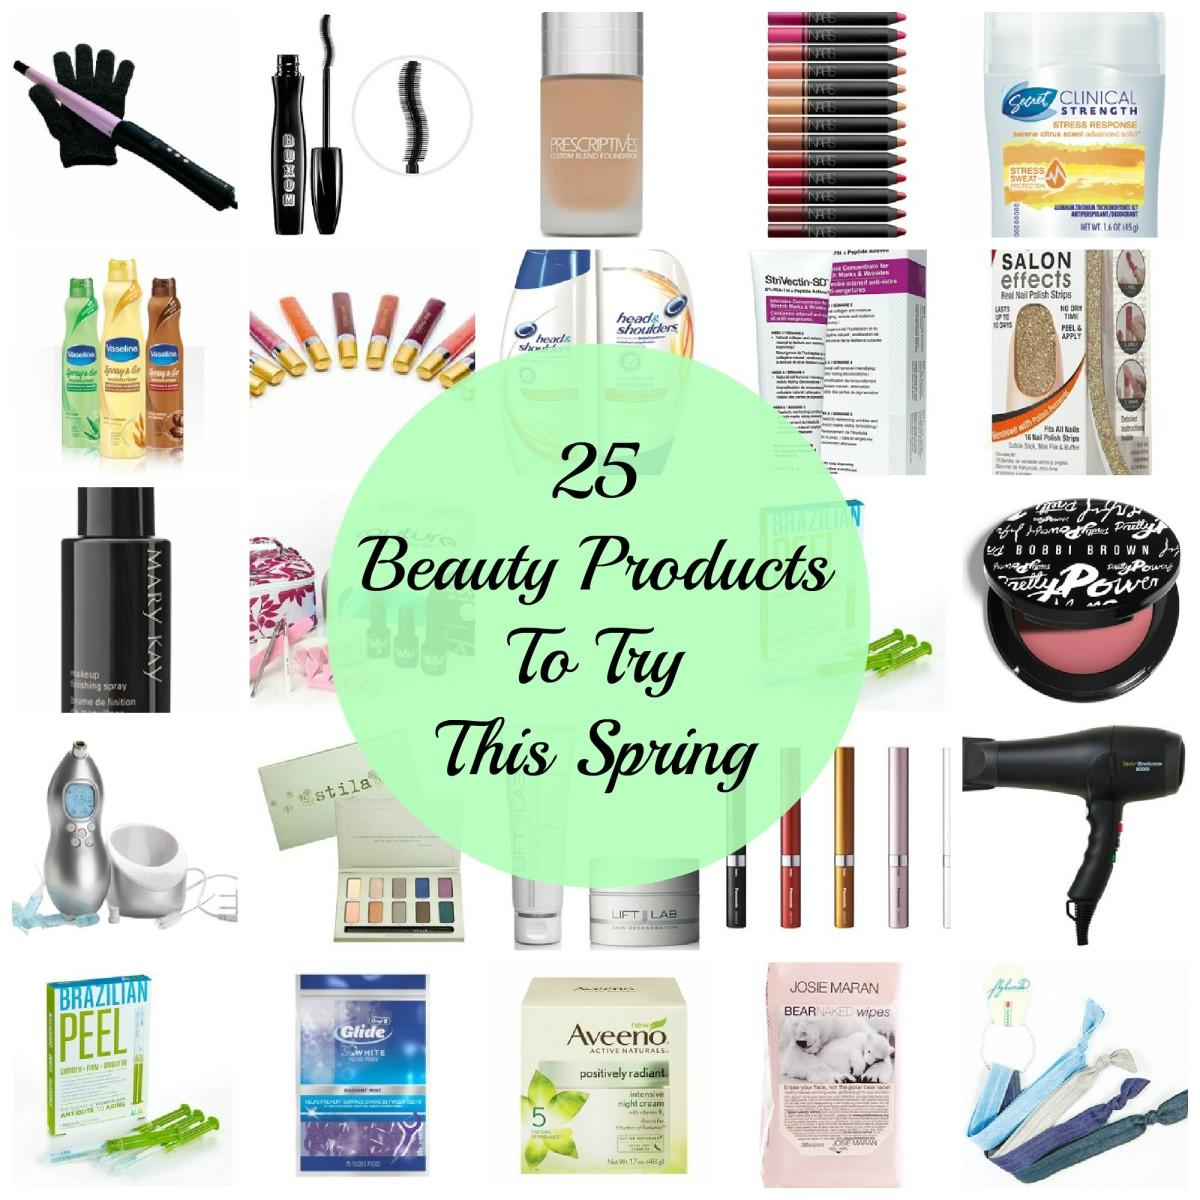 25 Beauty Products to Try This Spring